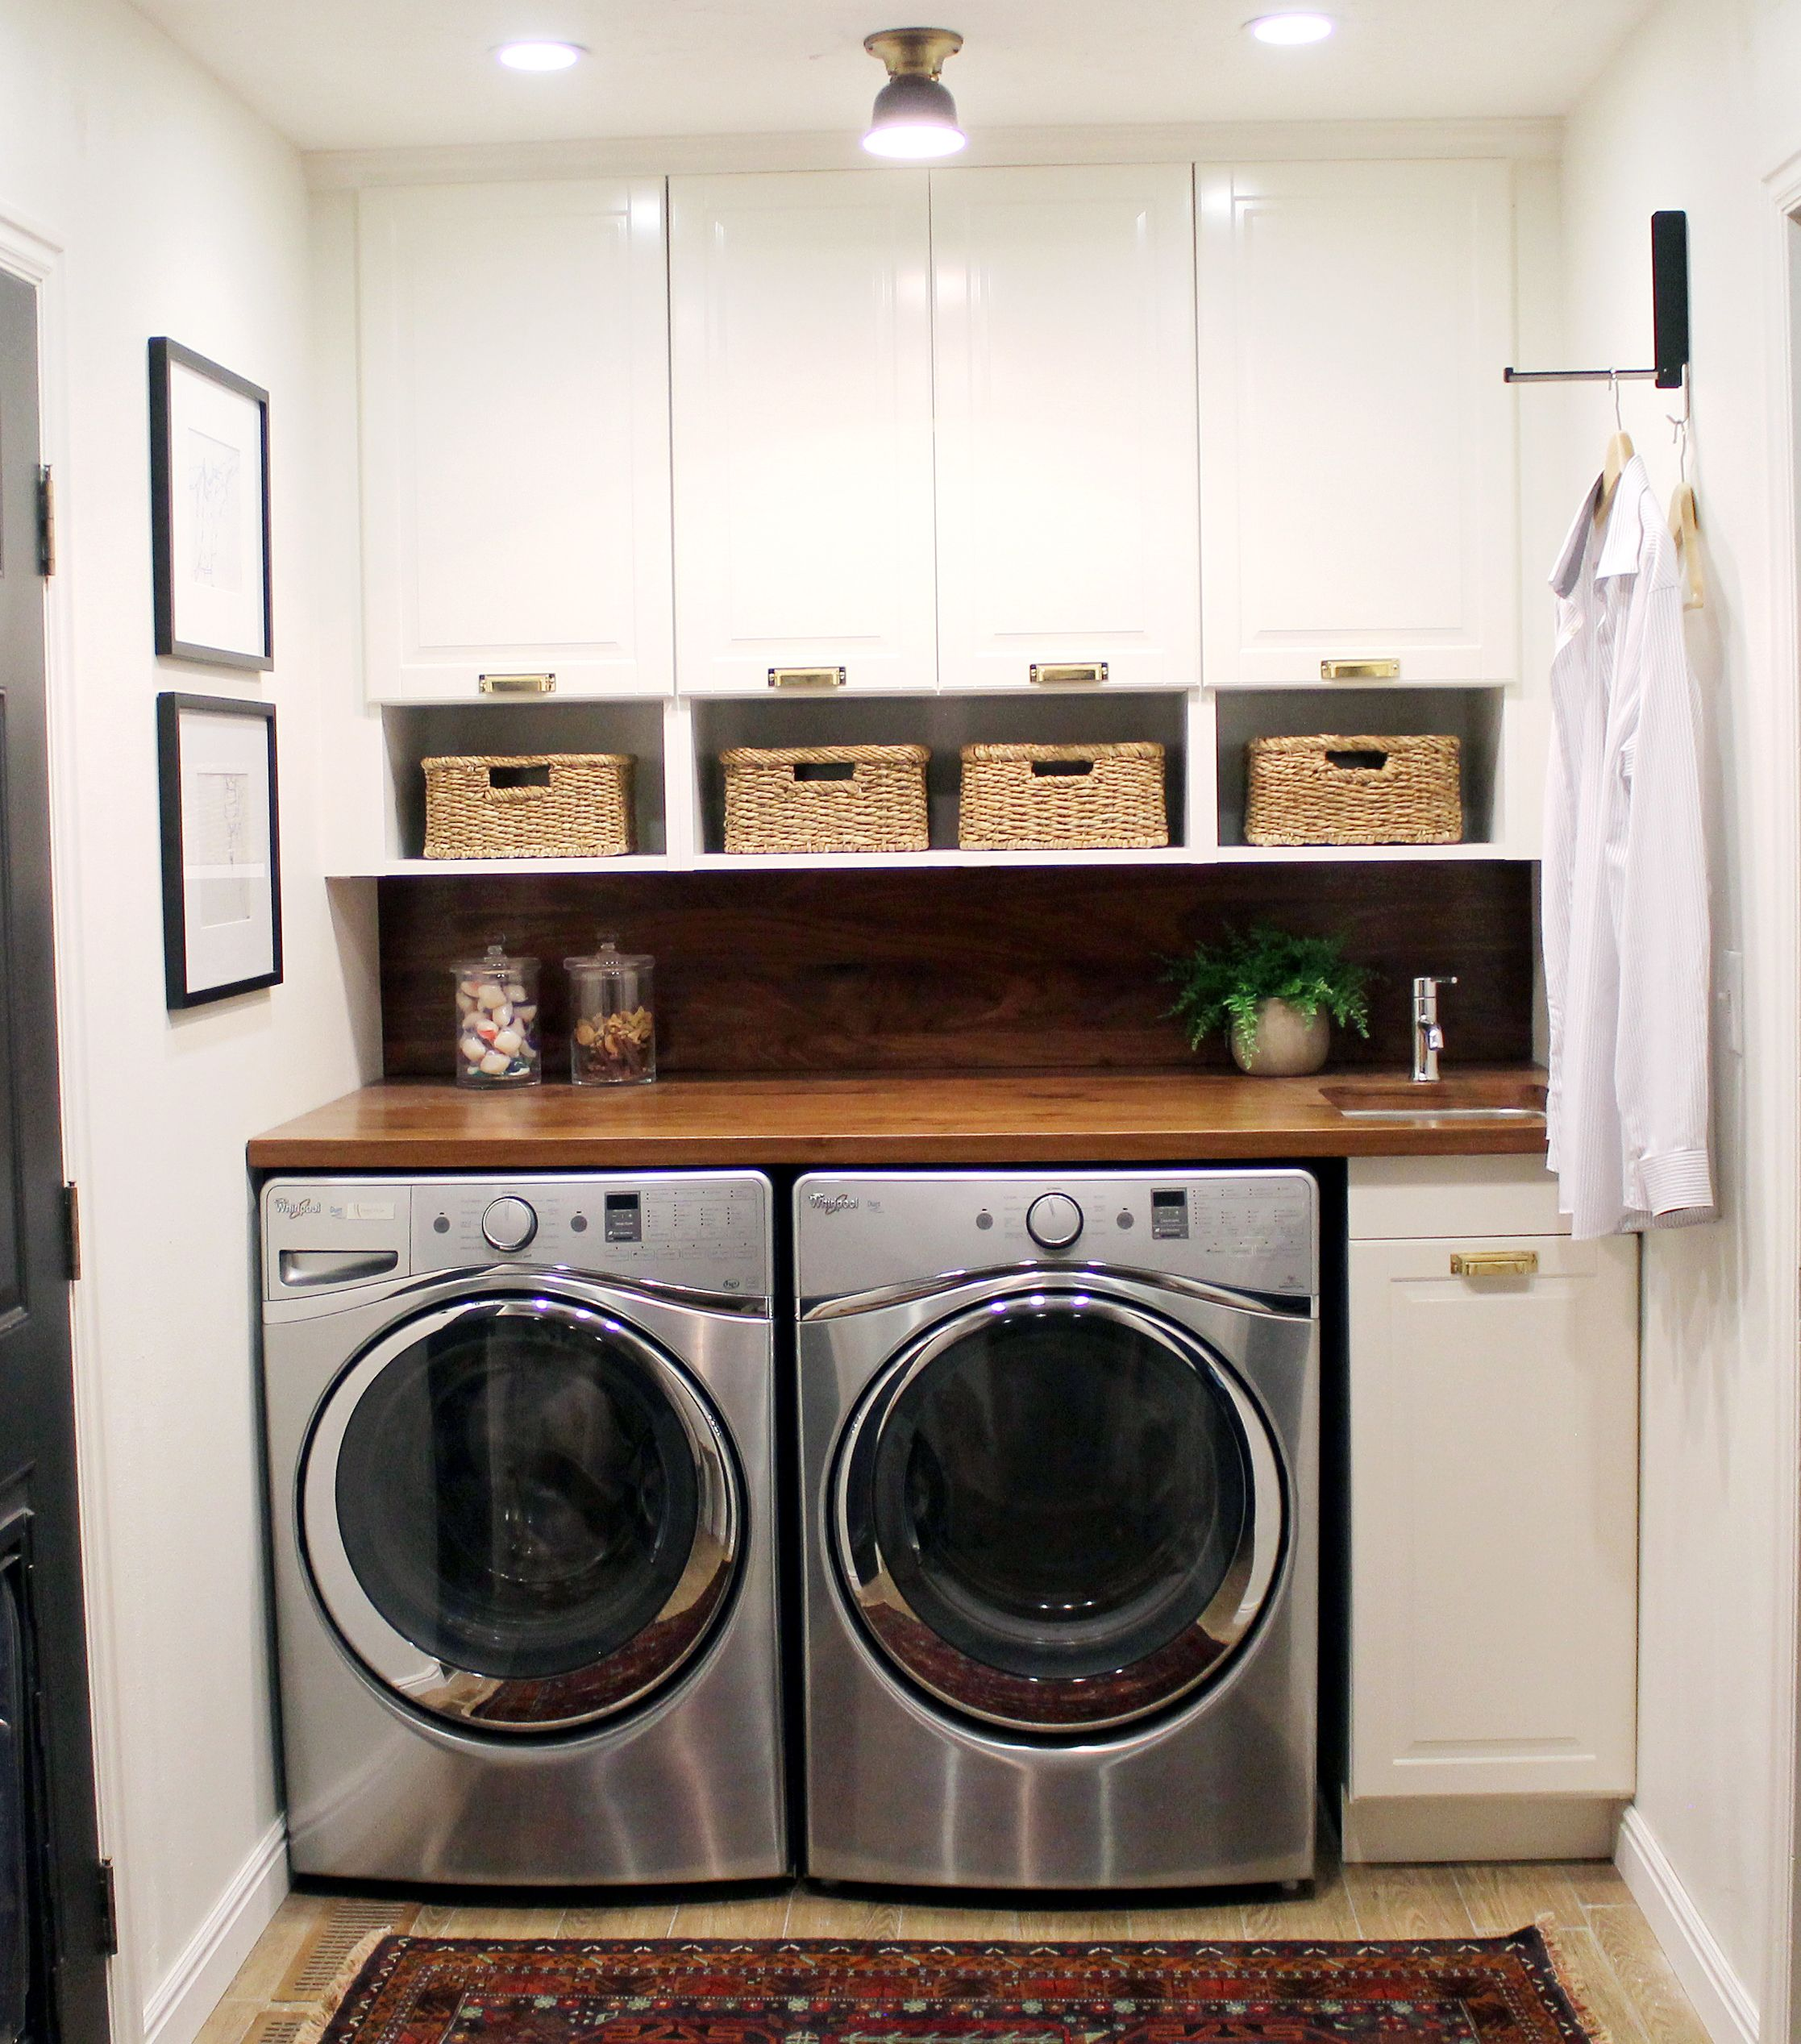 60 Beautiful Small Laundry Room Designs: Before And After: A Bathroom Turned Laundry Room